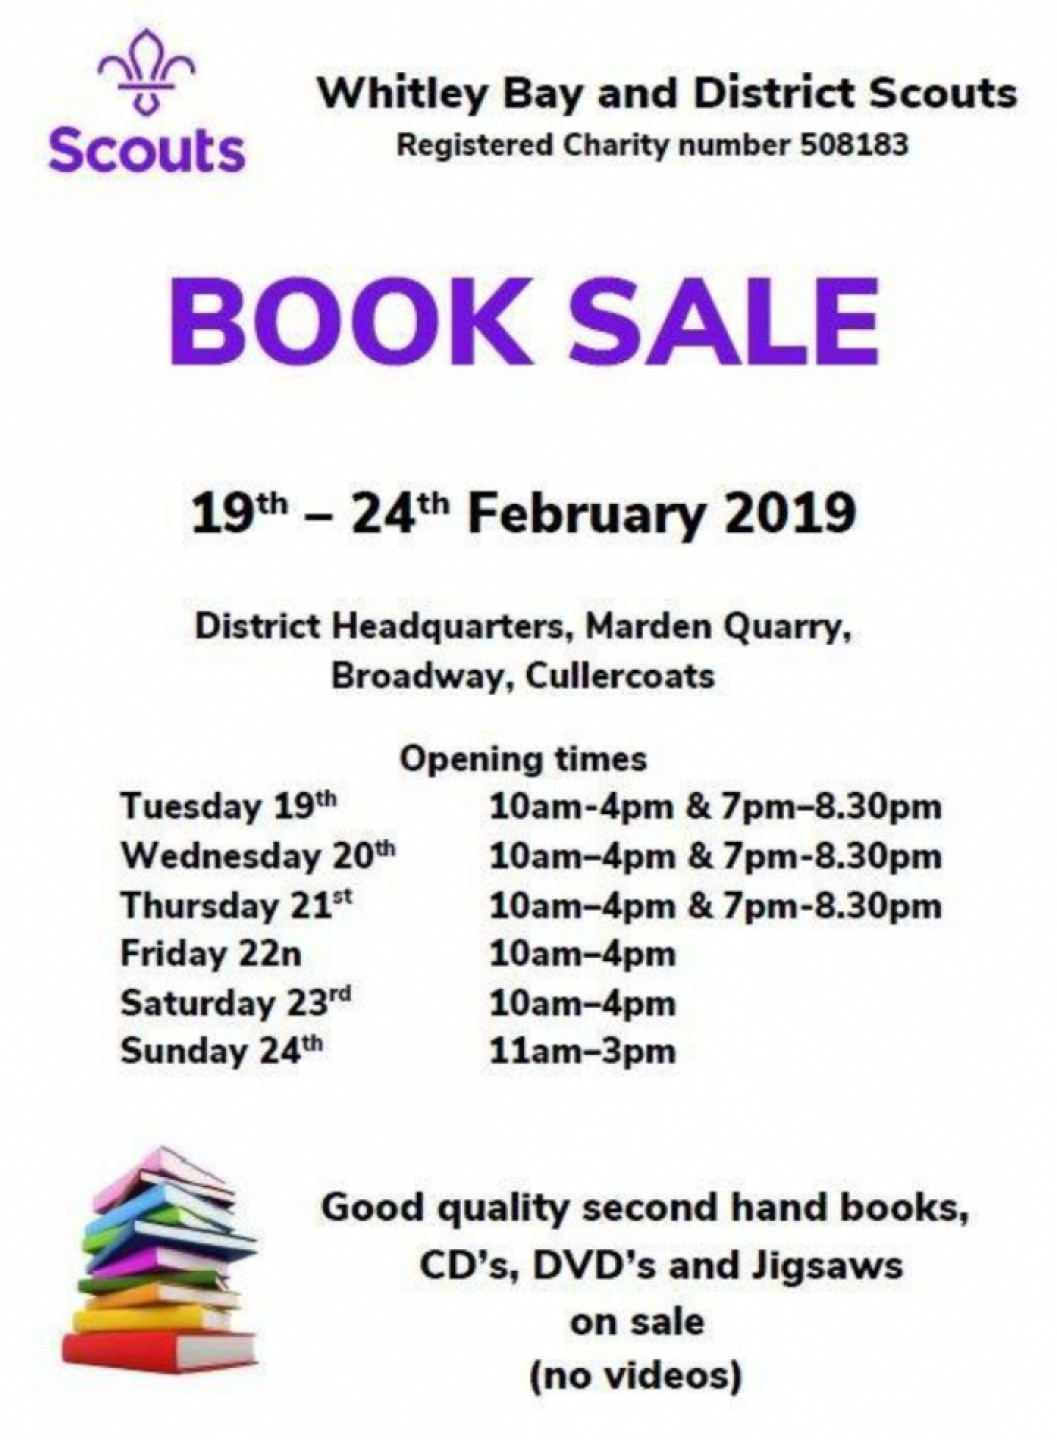 Whitley Bay & District Scouts - Book Sale 201